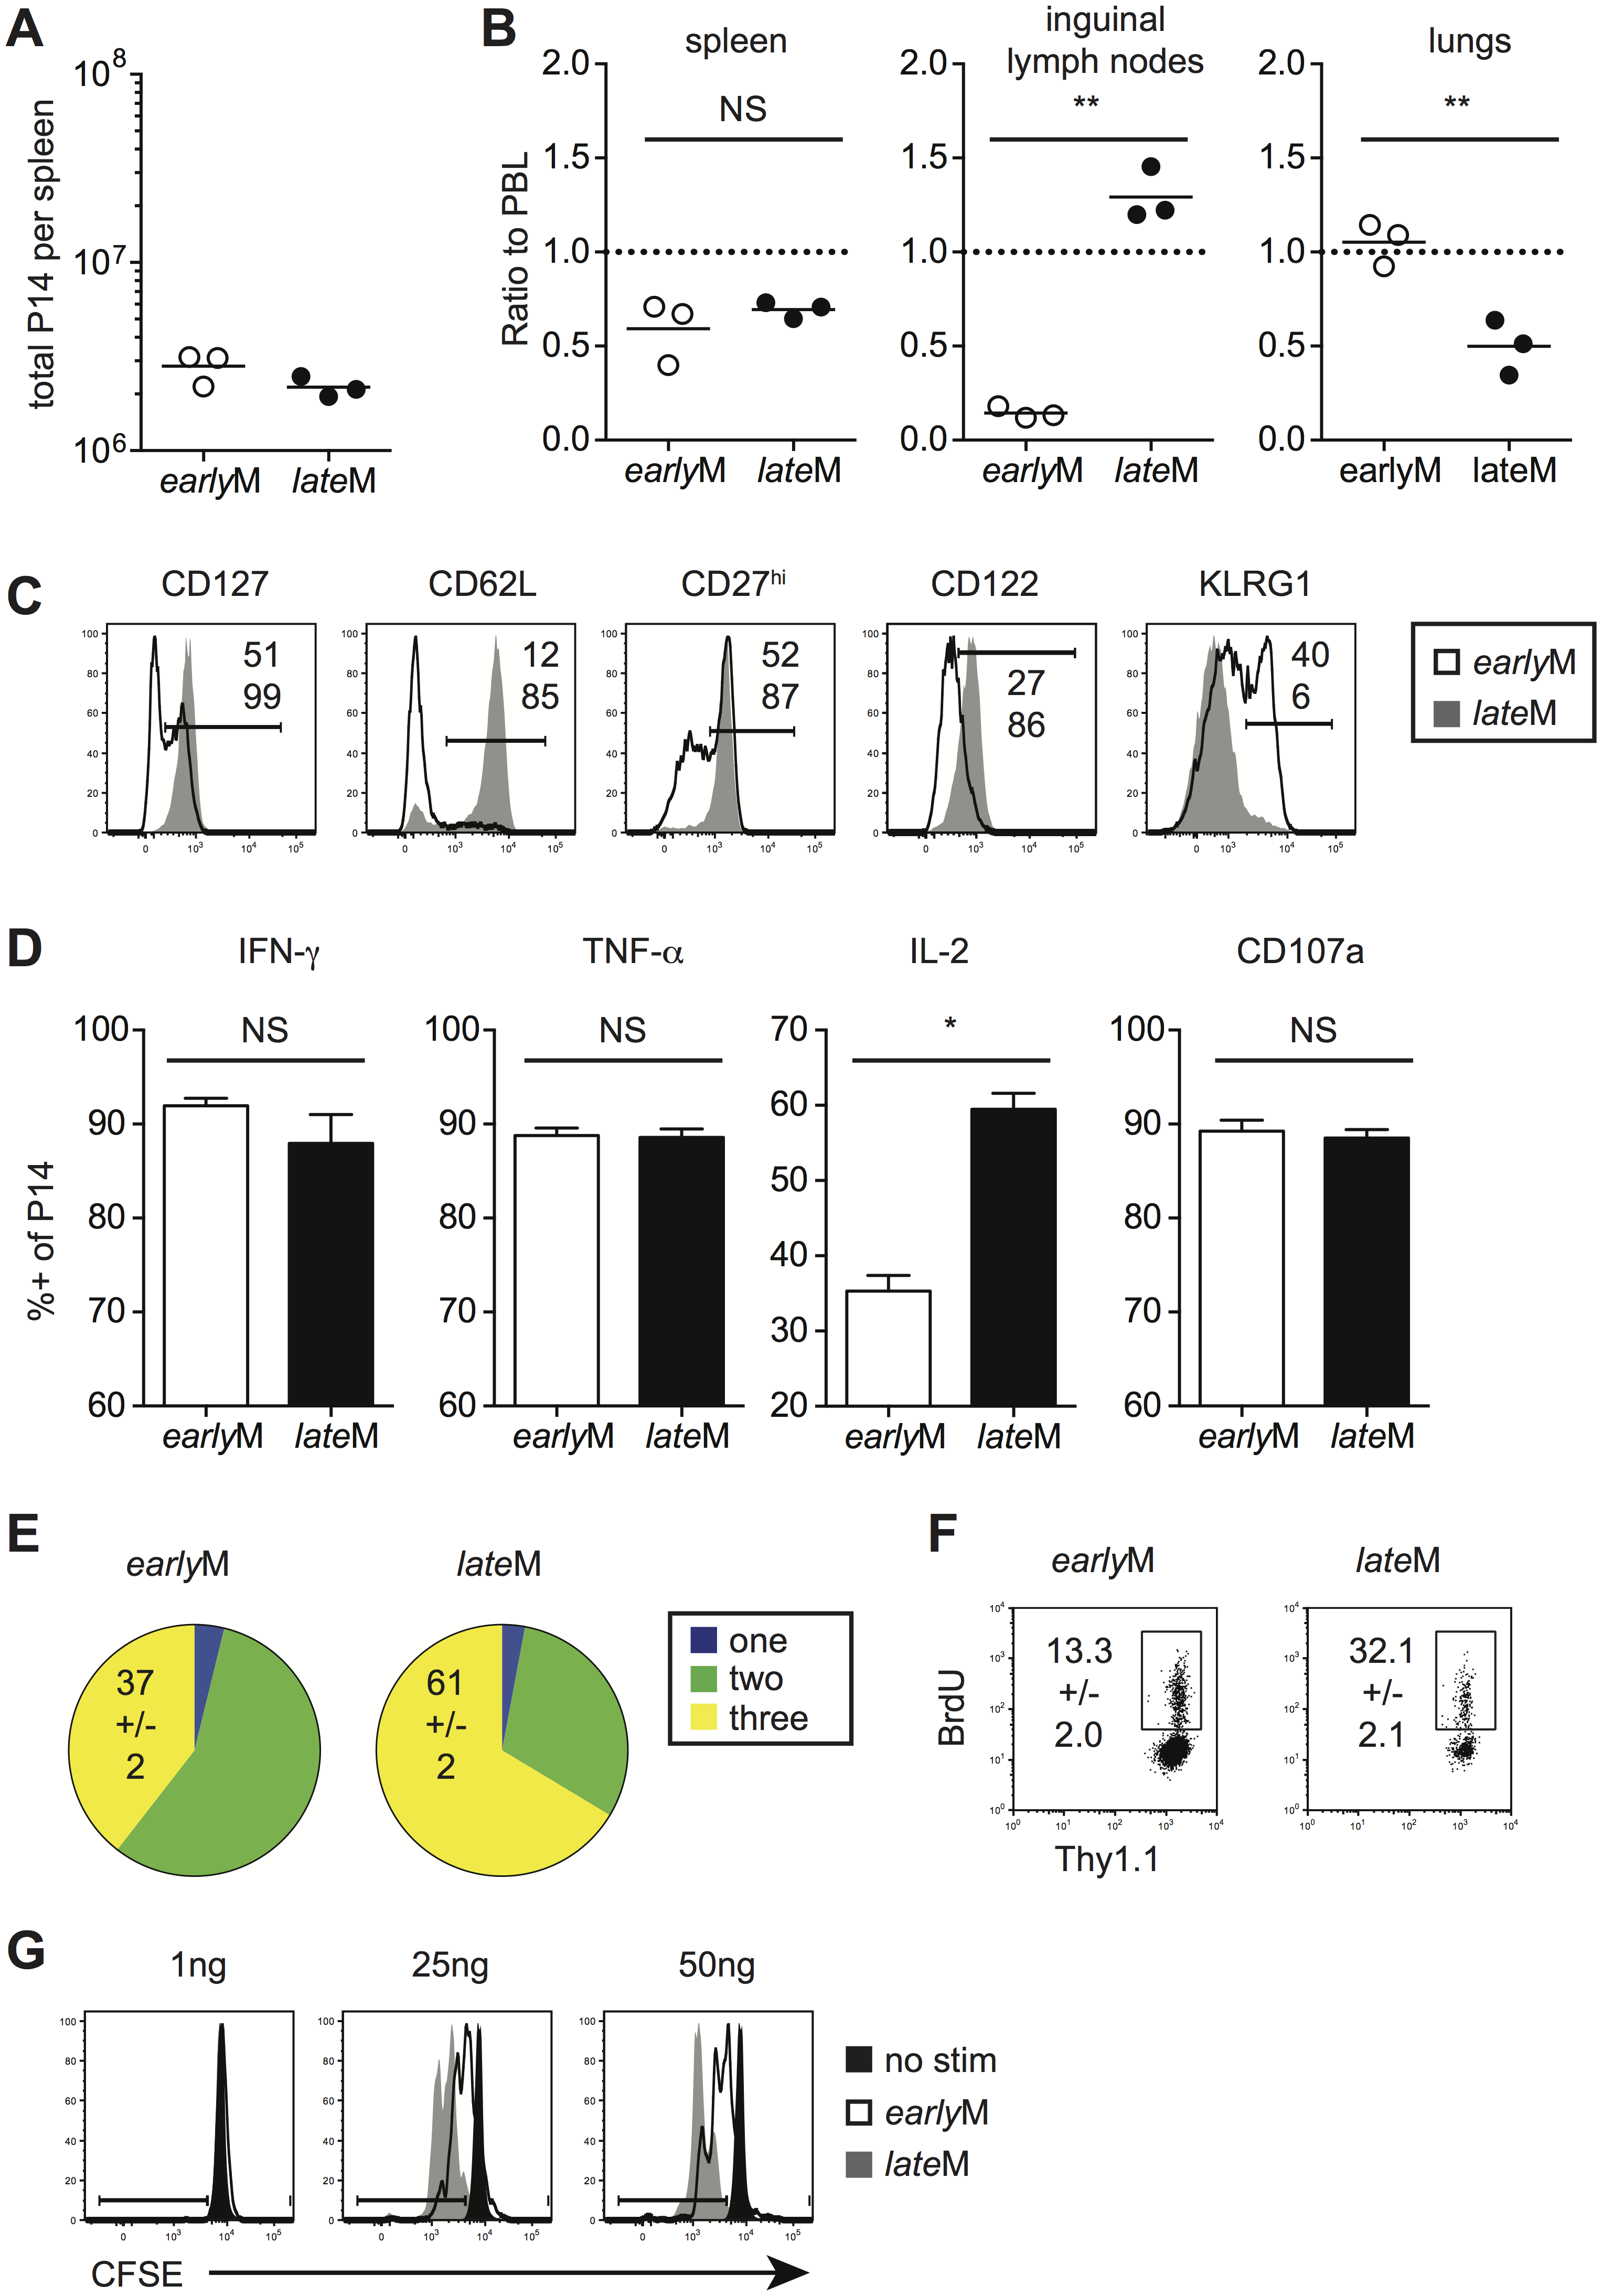 Localization, phenotype, and function of memory CD8 T cells changes with time after infection.